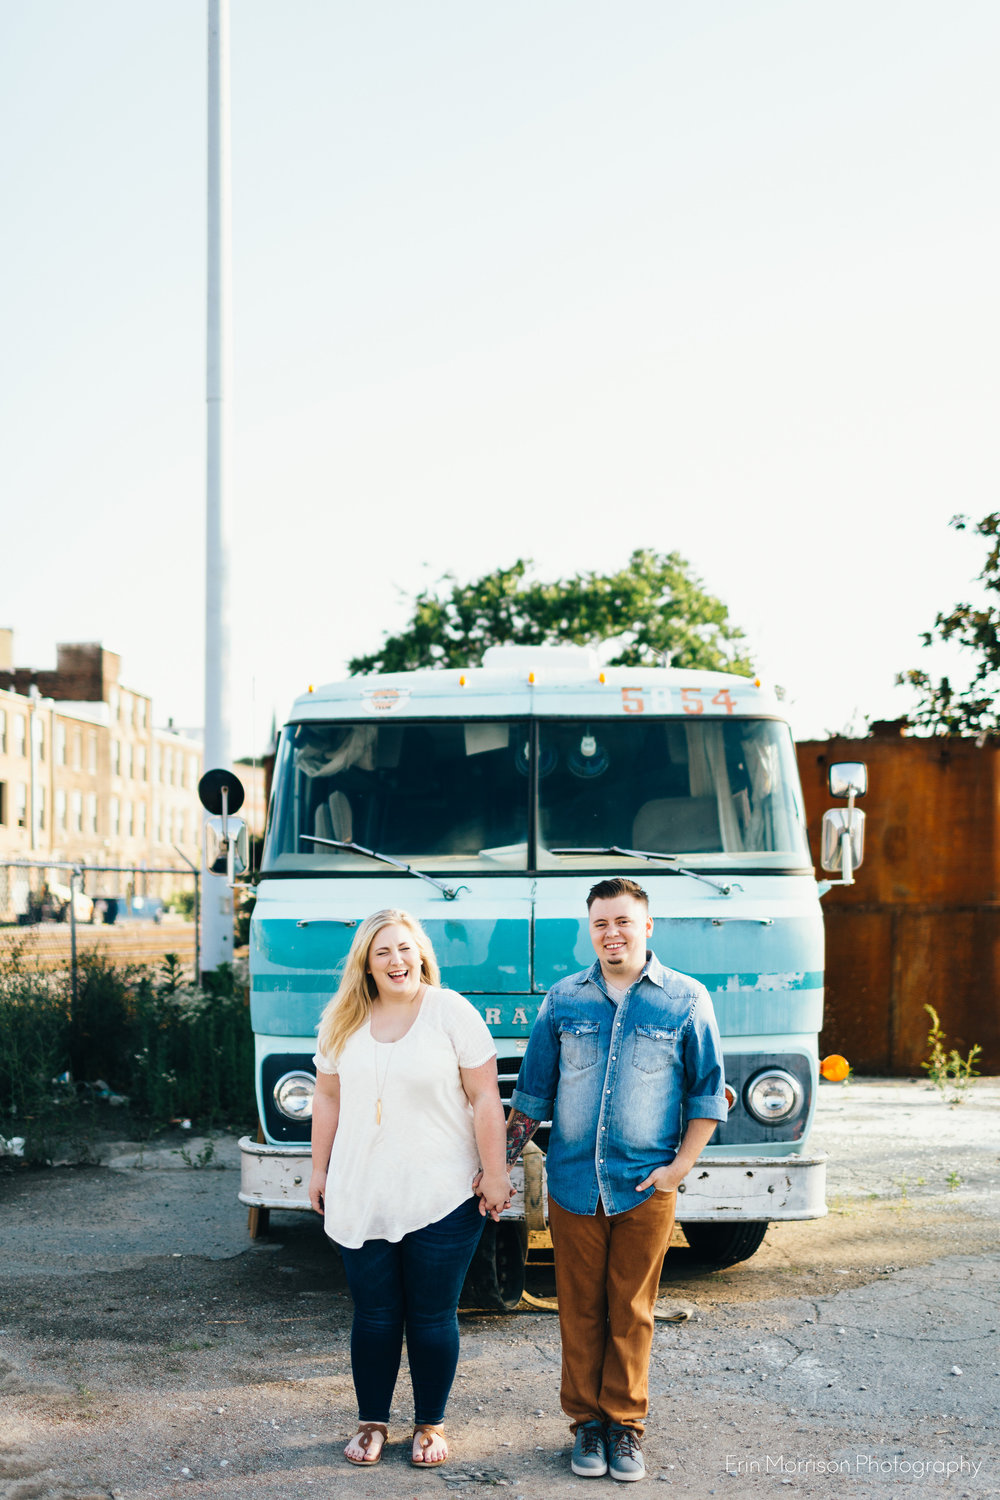 We're Jesse & Quinn - We're a husband and wife team out of Knoxville, TN. BUT we love to travelWe're big fans of joyWe love couples who love us backWe don't do fake super posey stuffWe do do genuine happy stuffWe're believe coffee can fix most thingsFlowers can fix the restWe're excellent dress fluffers, champagne bringers, snot rag holdersWe're big believers in meshing with our clientsWe like lounging on our couch with our pups, binging The OfficeWe have Christmas candles burning year roundOur house is full of happy bright stuff because we're happy bright peopleWe want to be a part of your wedding day